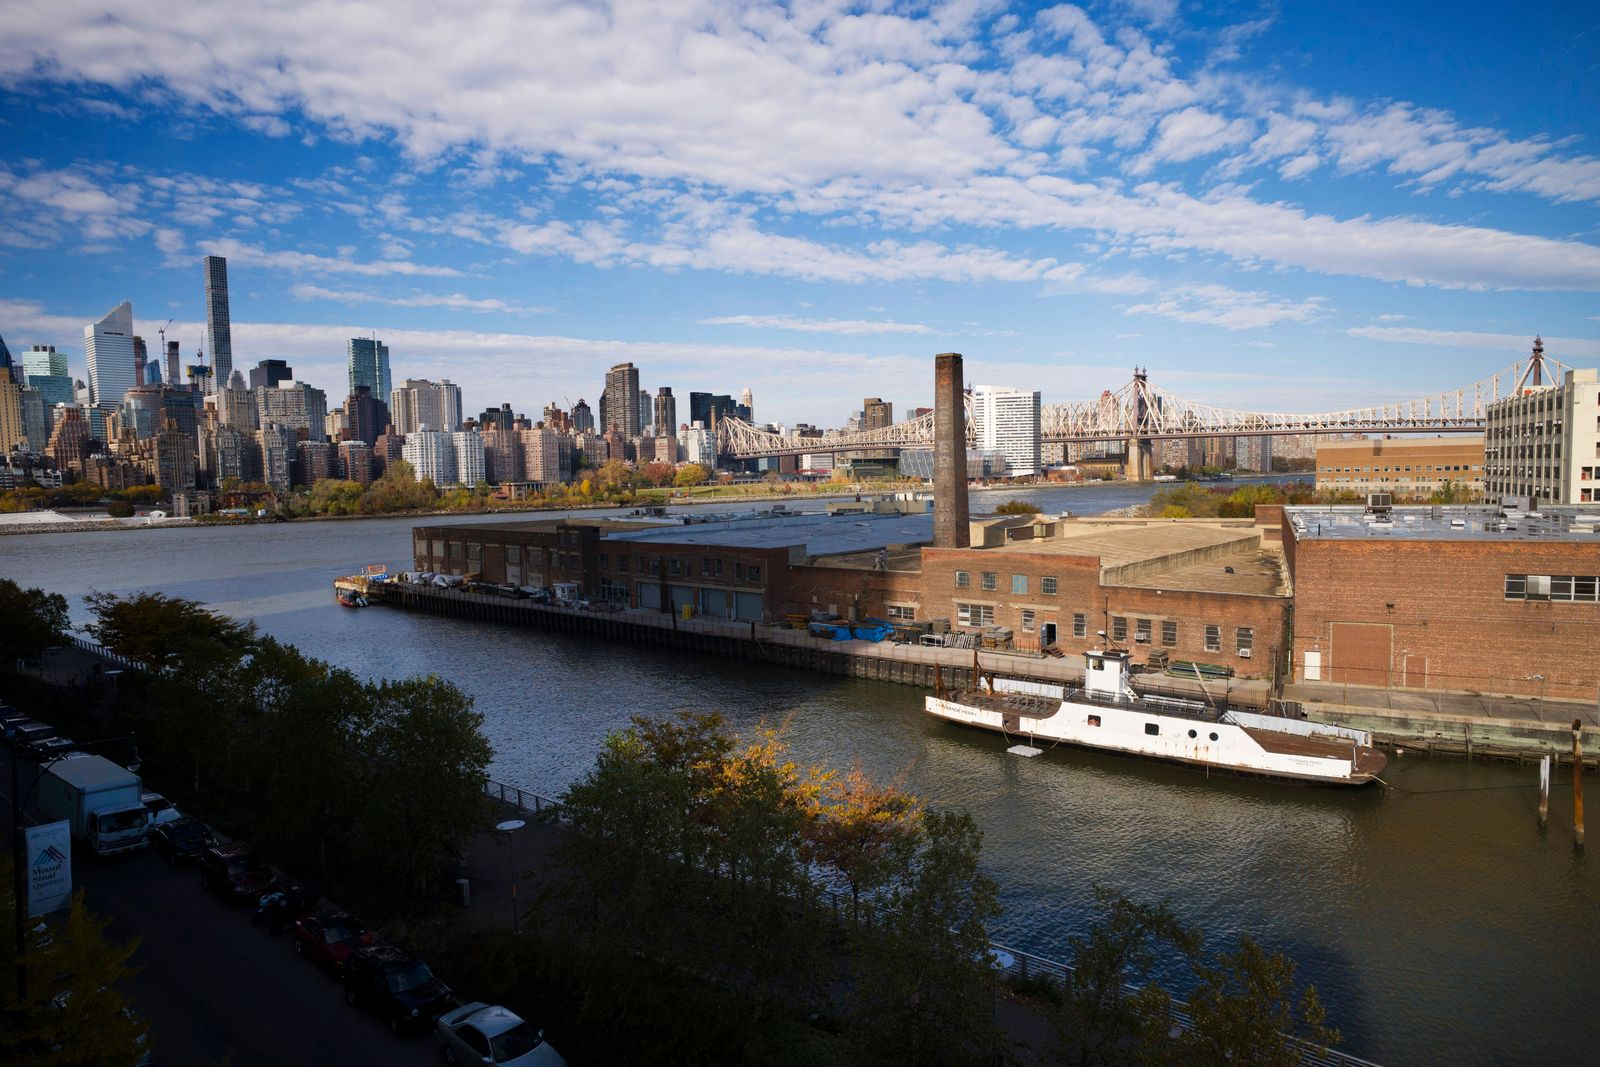 FILE- In this Nov. 7, 2018, file photo, a rusting ferryboat is docked next to an aging industrial warehouse on Long Island City's Anable Basin in the Queens borough of New York. (AP Photo/Mark Lennihan, File)